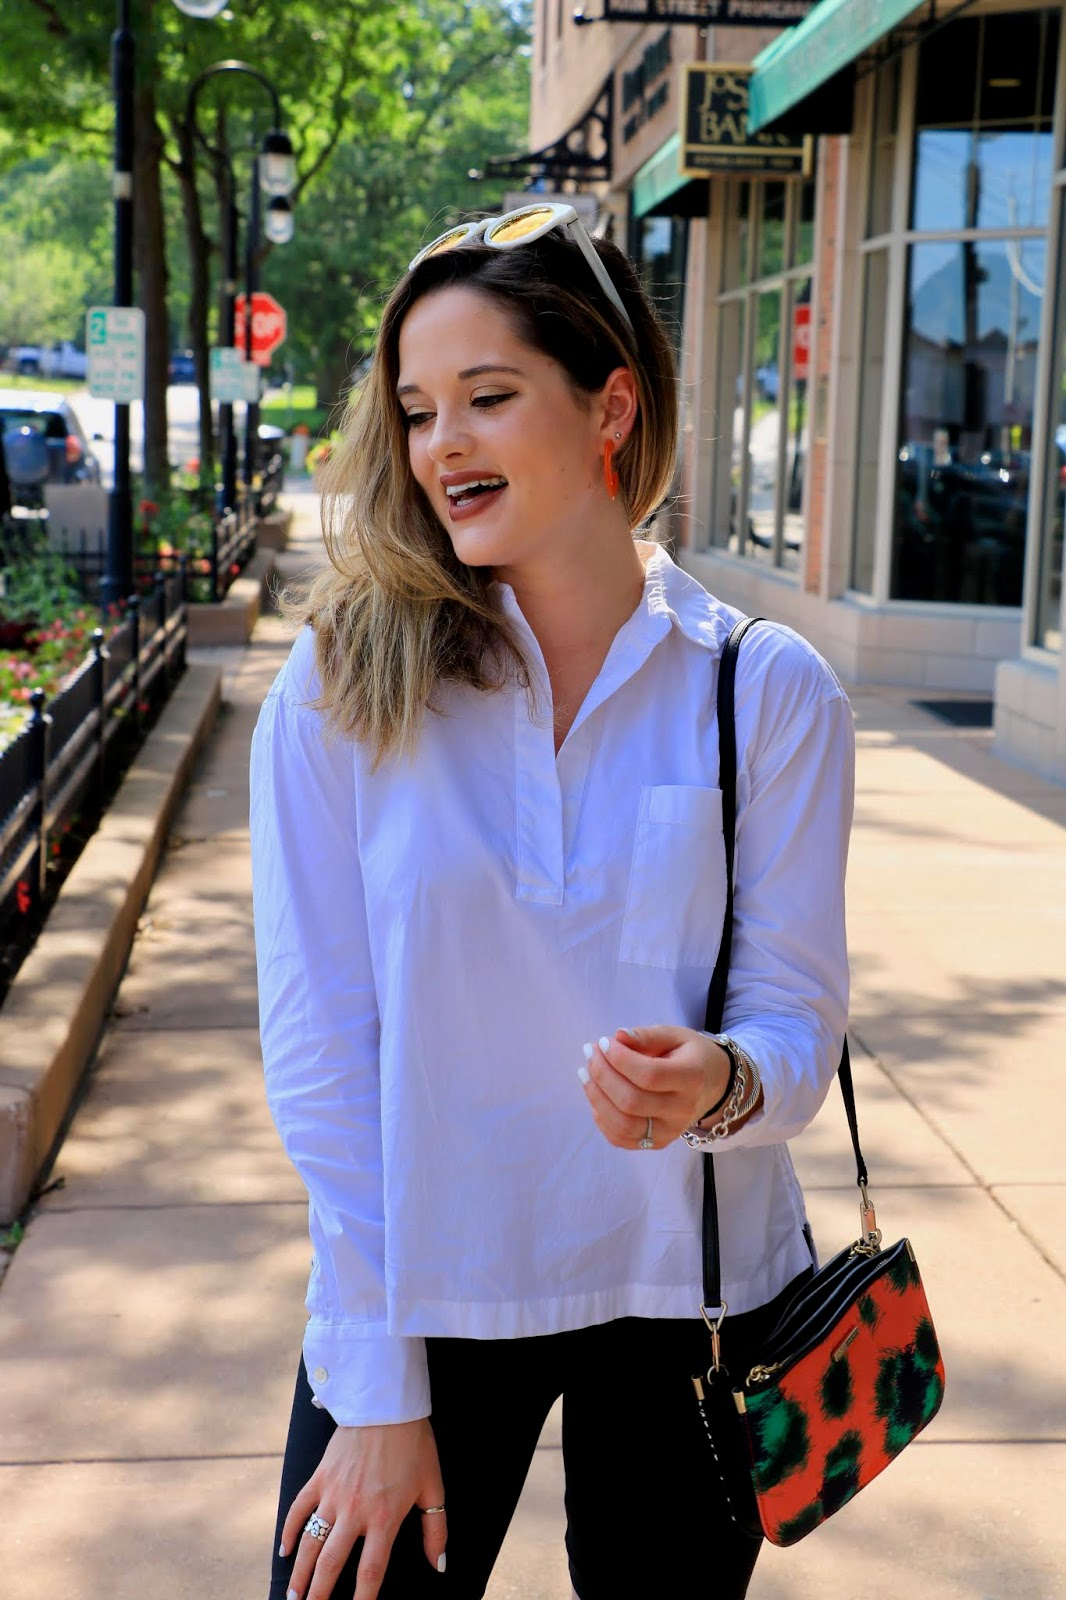 Nyc fashion blogger Kathleen Harper wearing a summer weekend outfit.